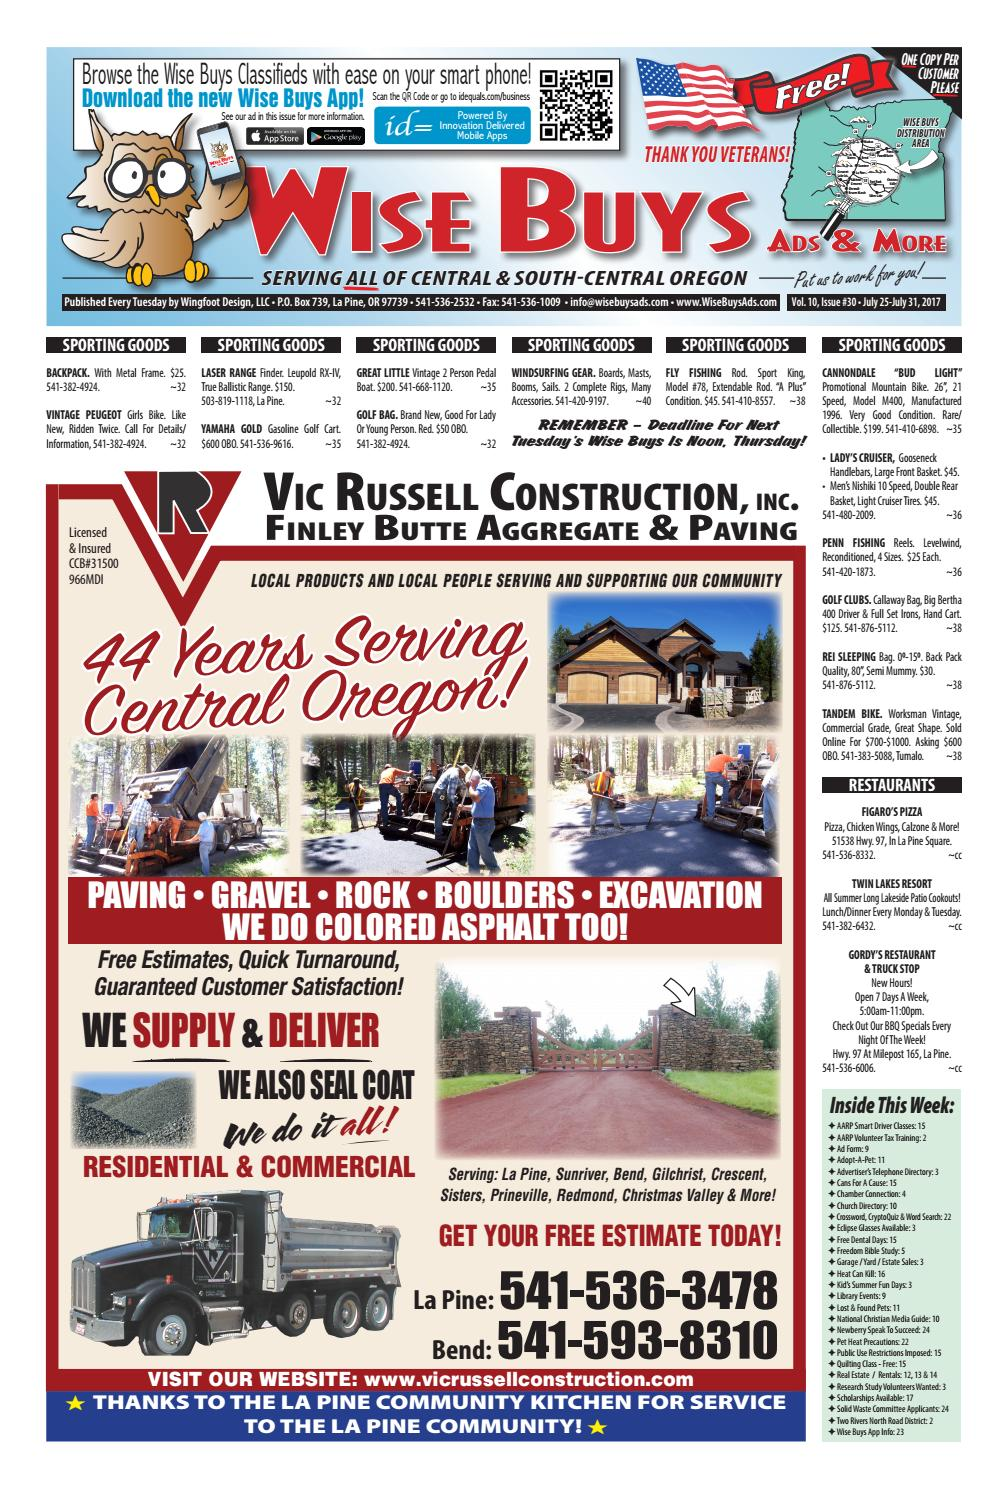 Wise Buys 07-25-17 by Wise Buys Ads & More - issuu